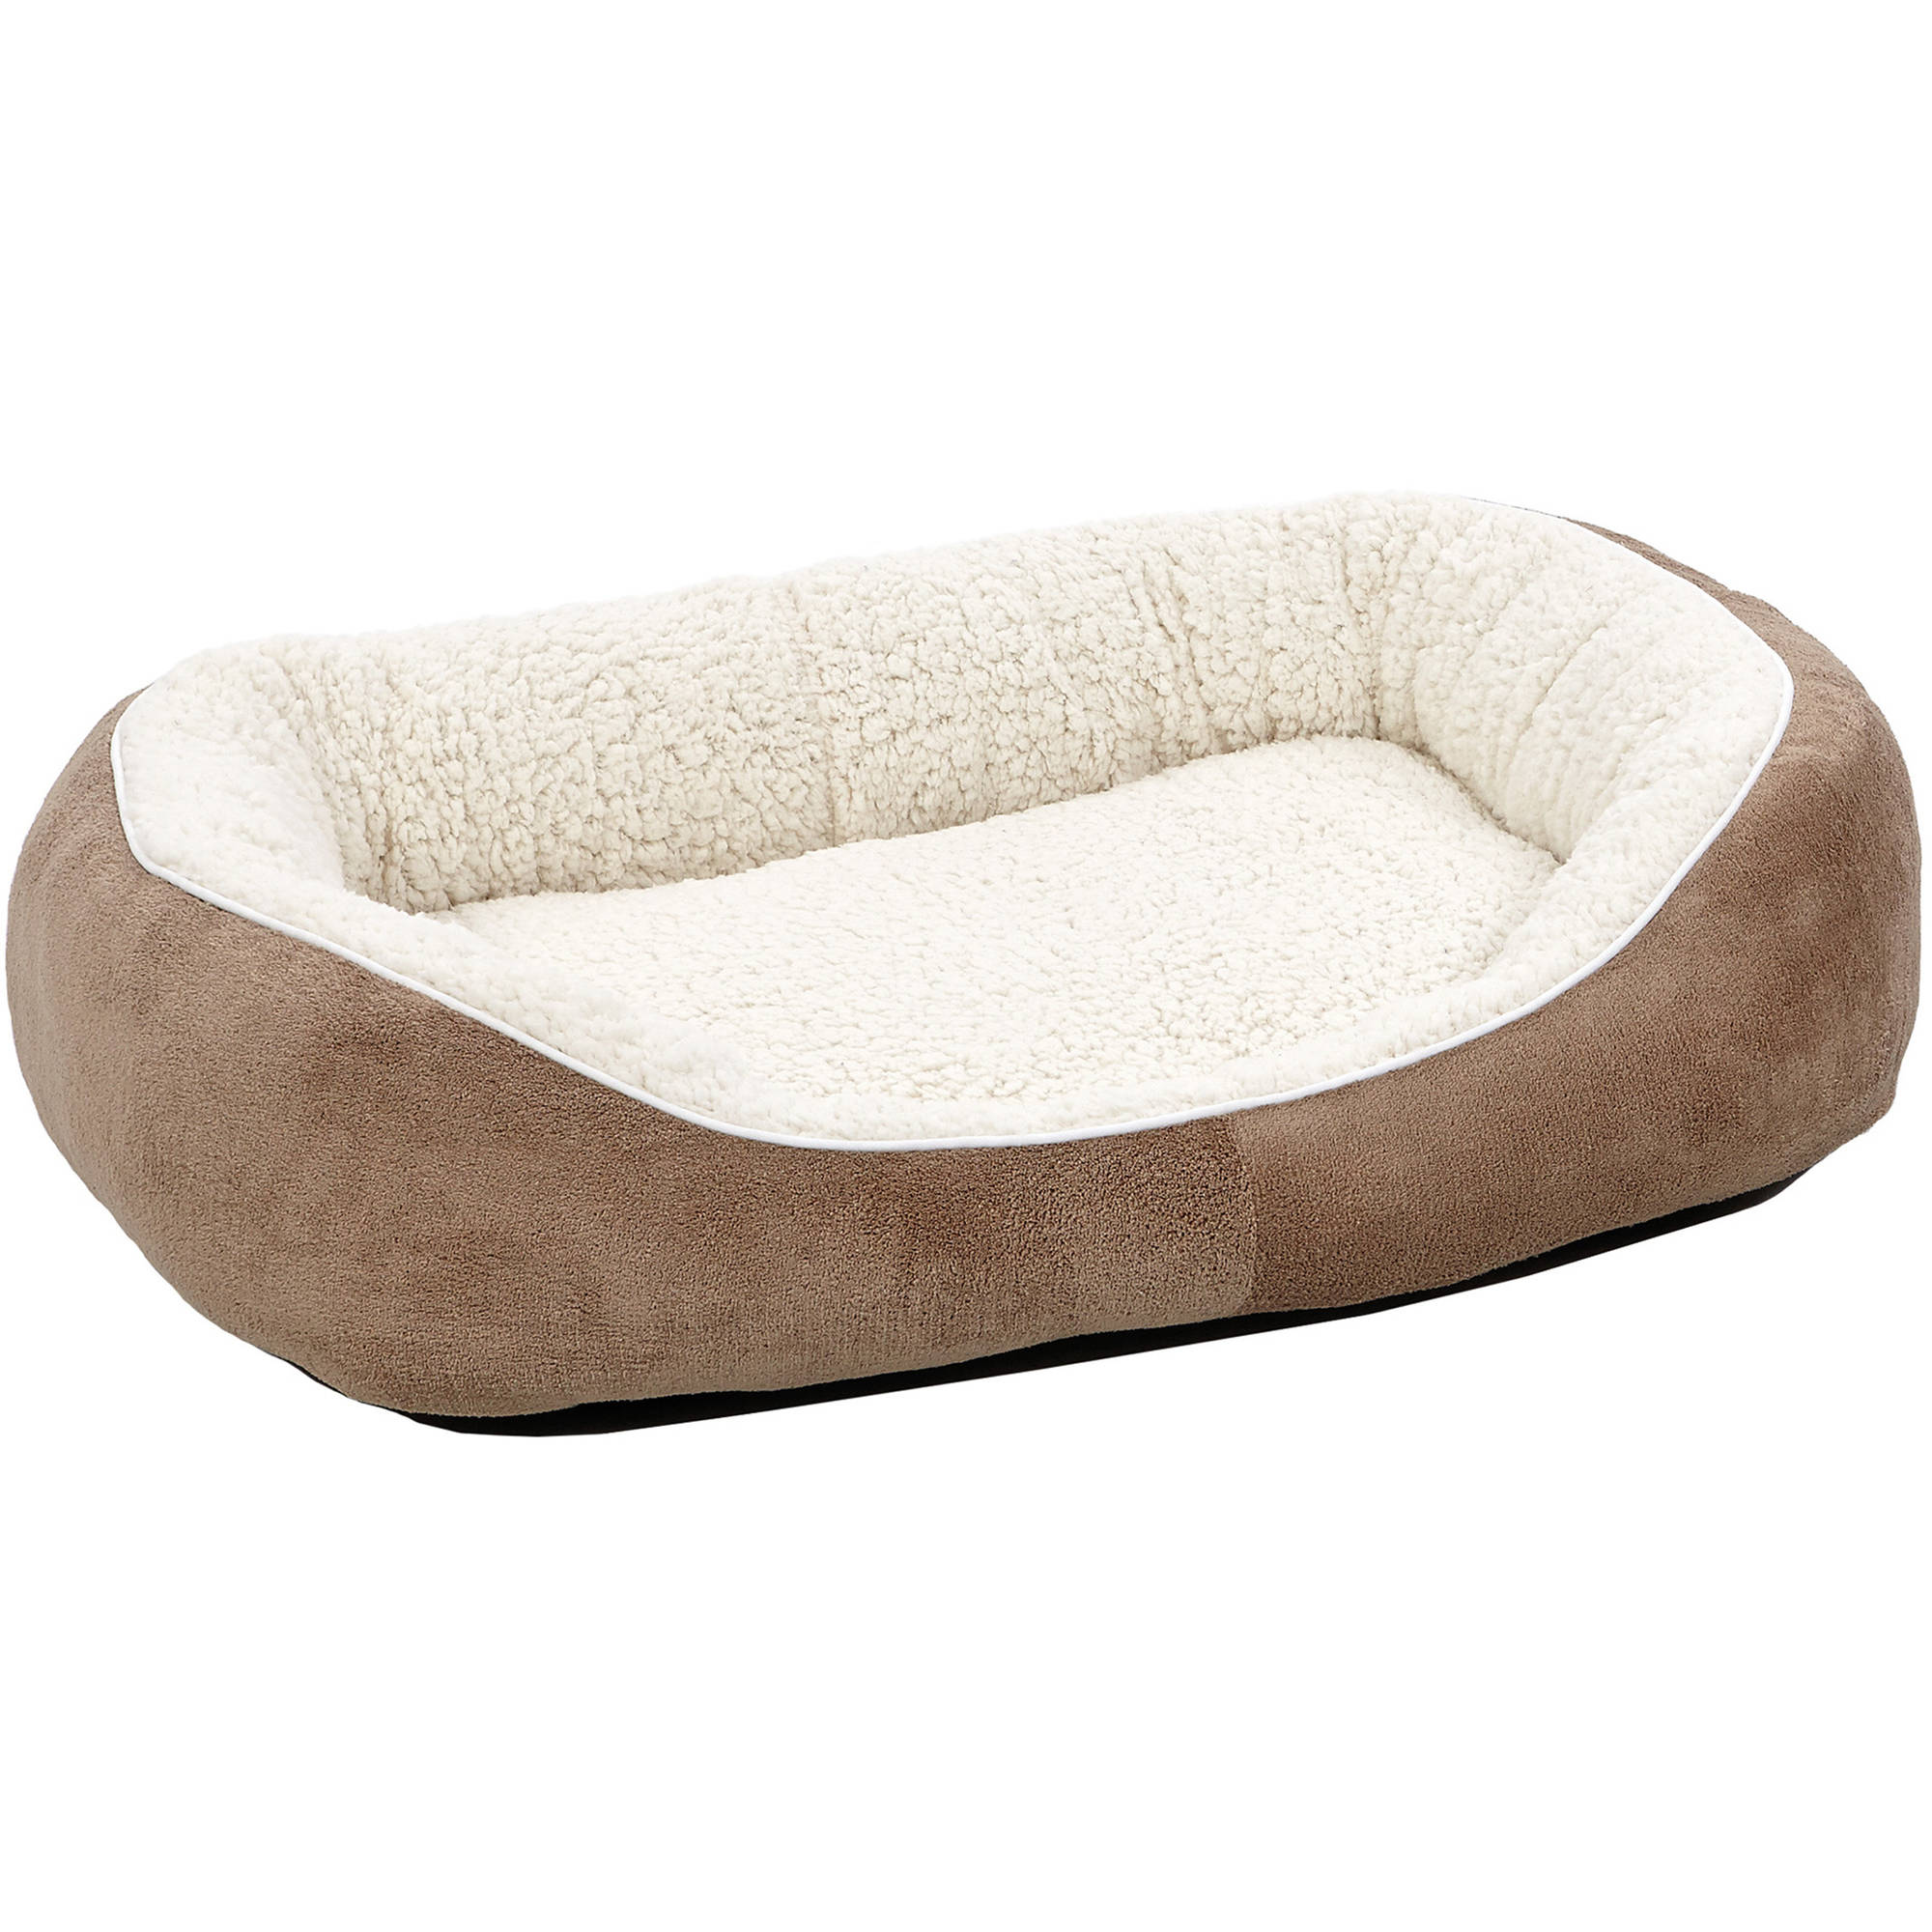 Dog Bed Couch Amazon